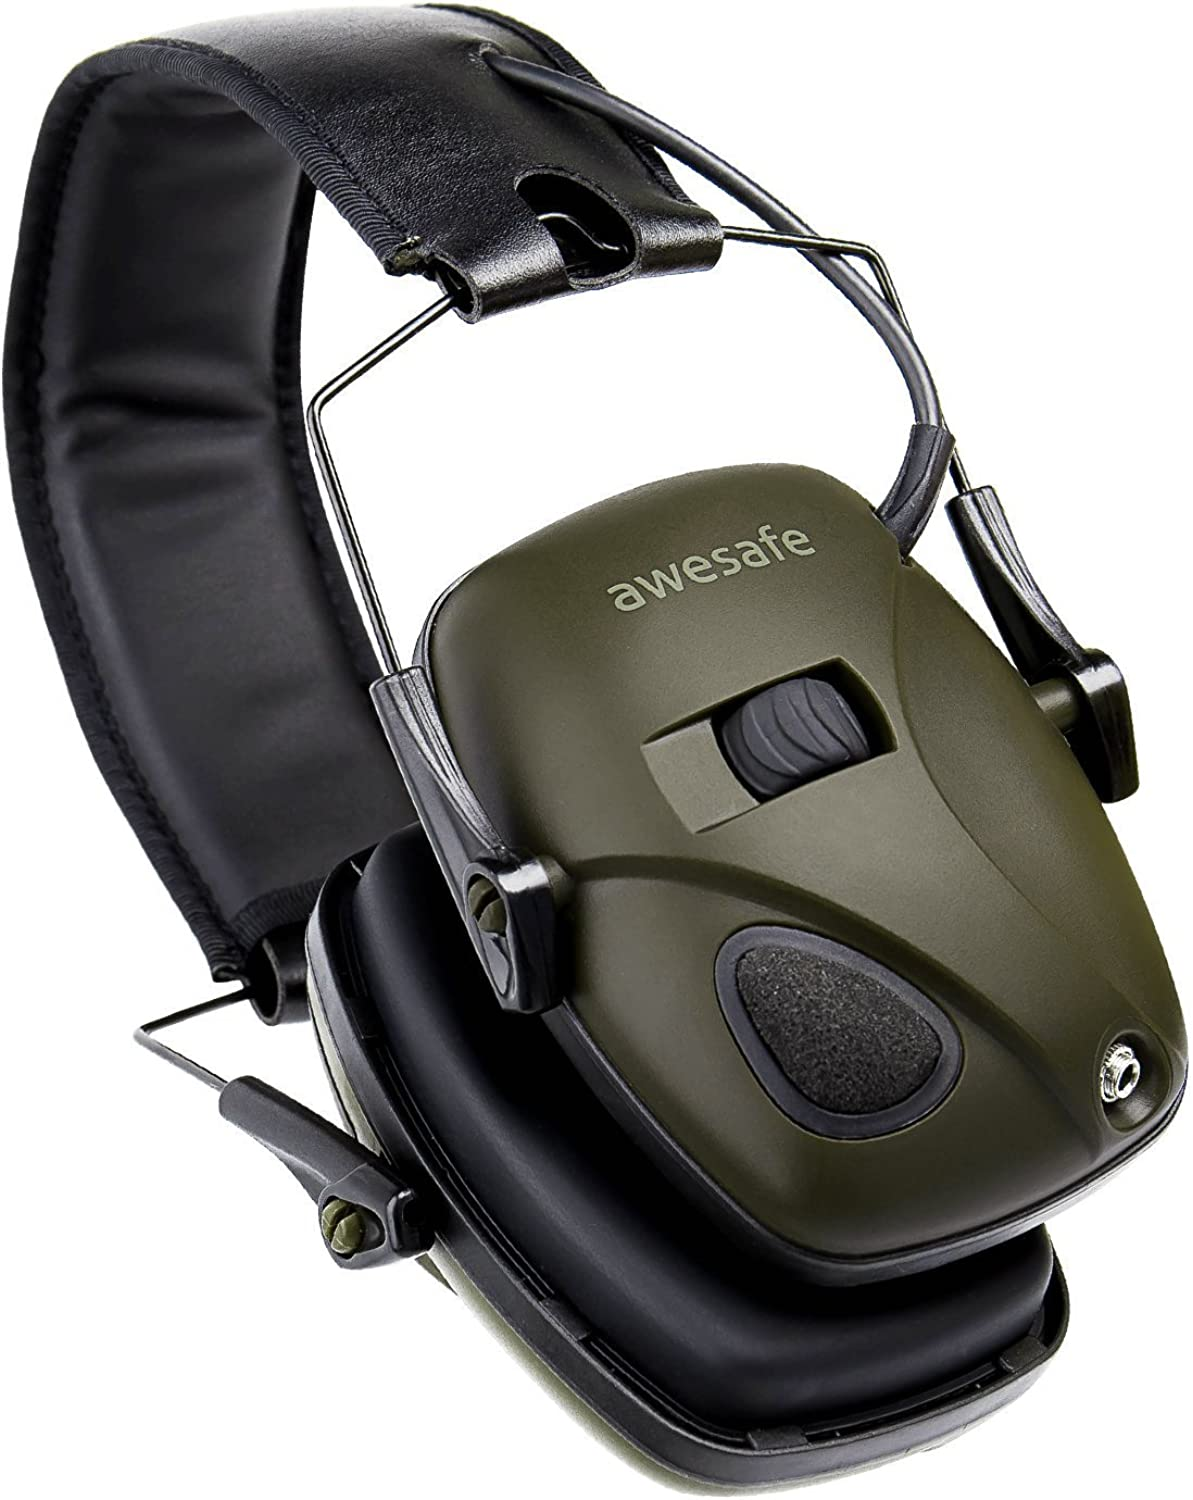 awesafe Electronic Shooting Earmuffs Hearing Protection with Sound Amplification and Suppression : Clothing